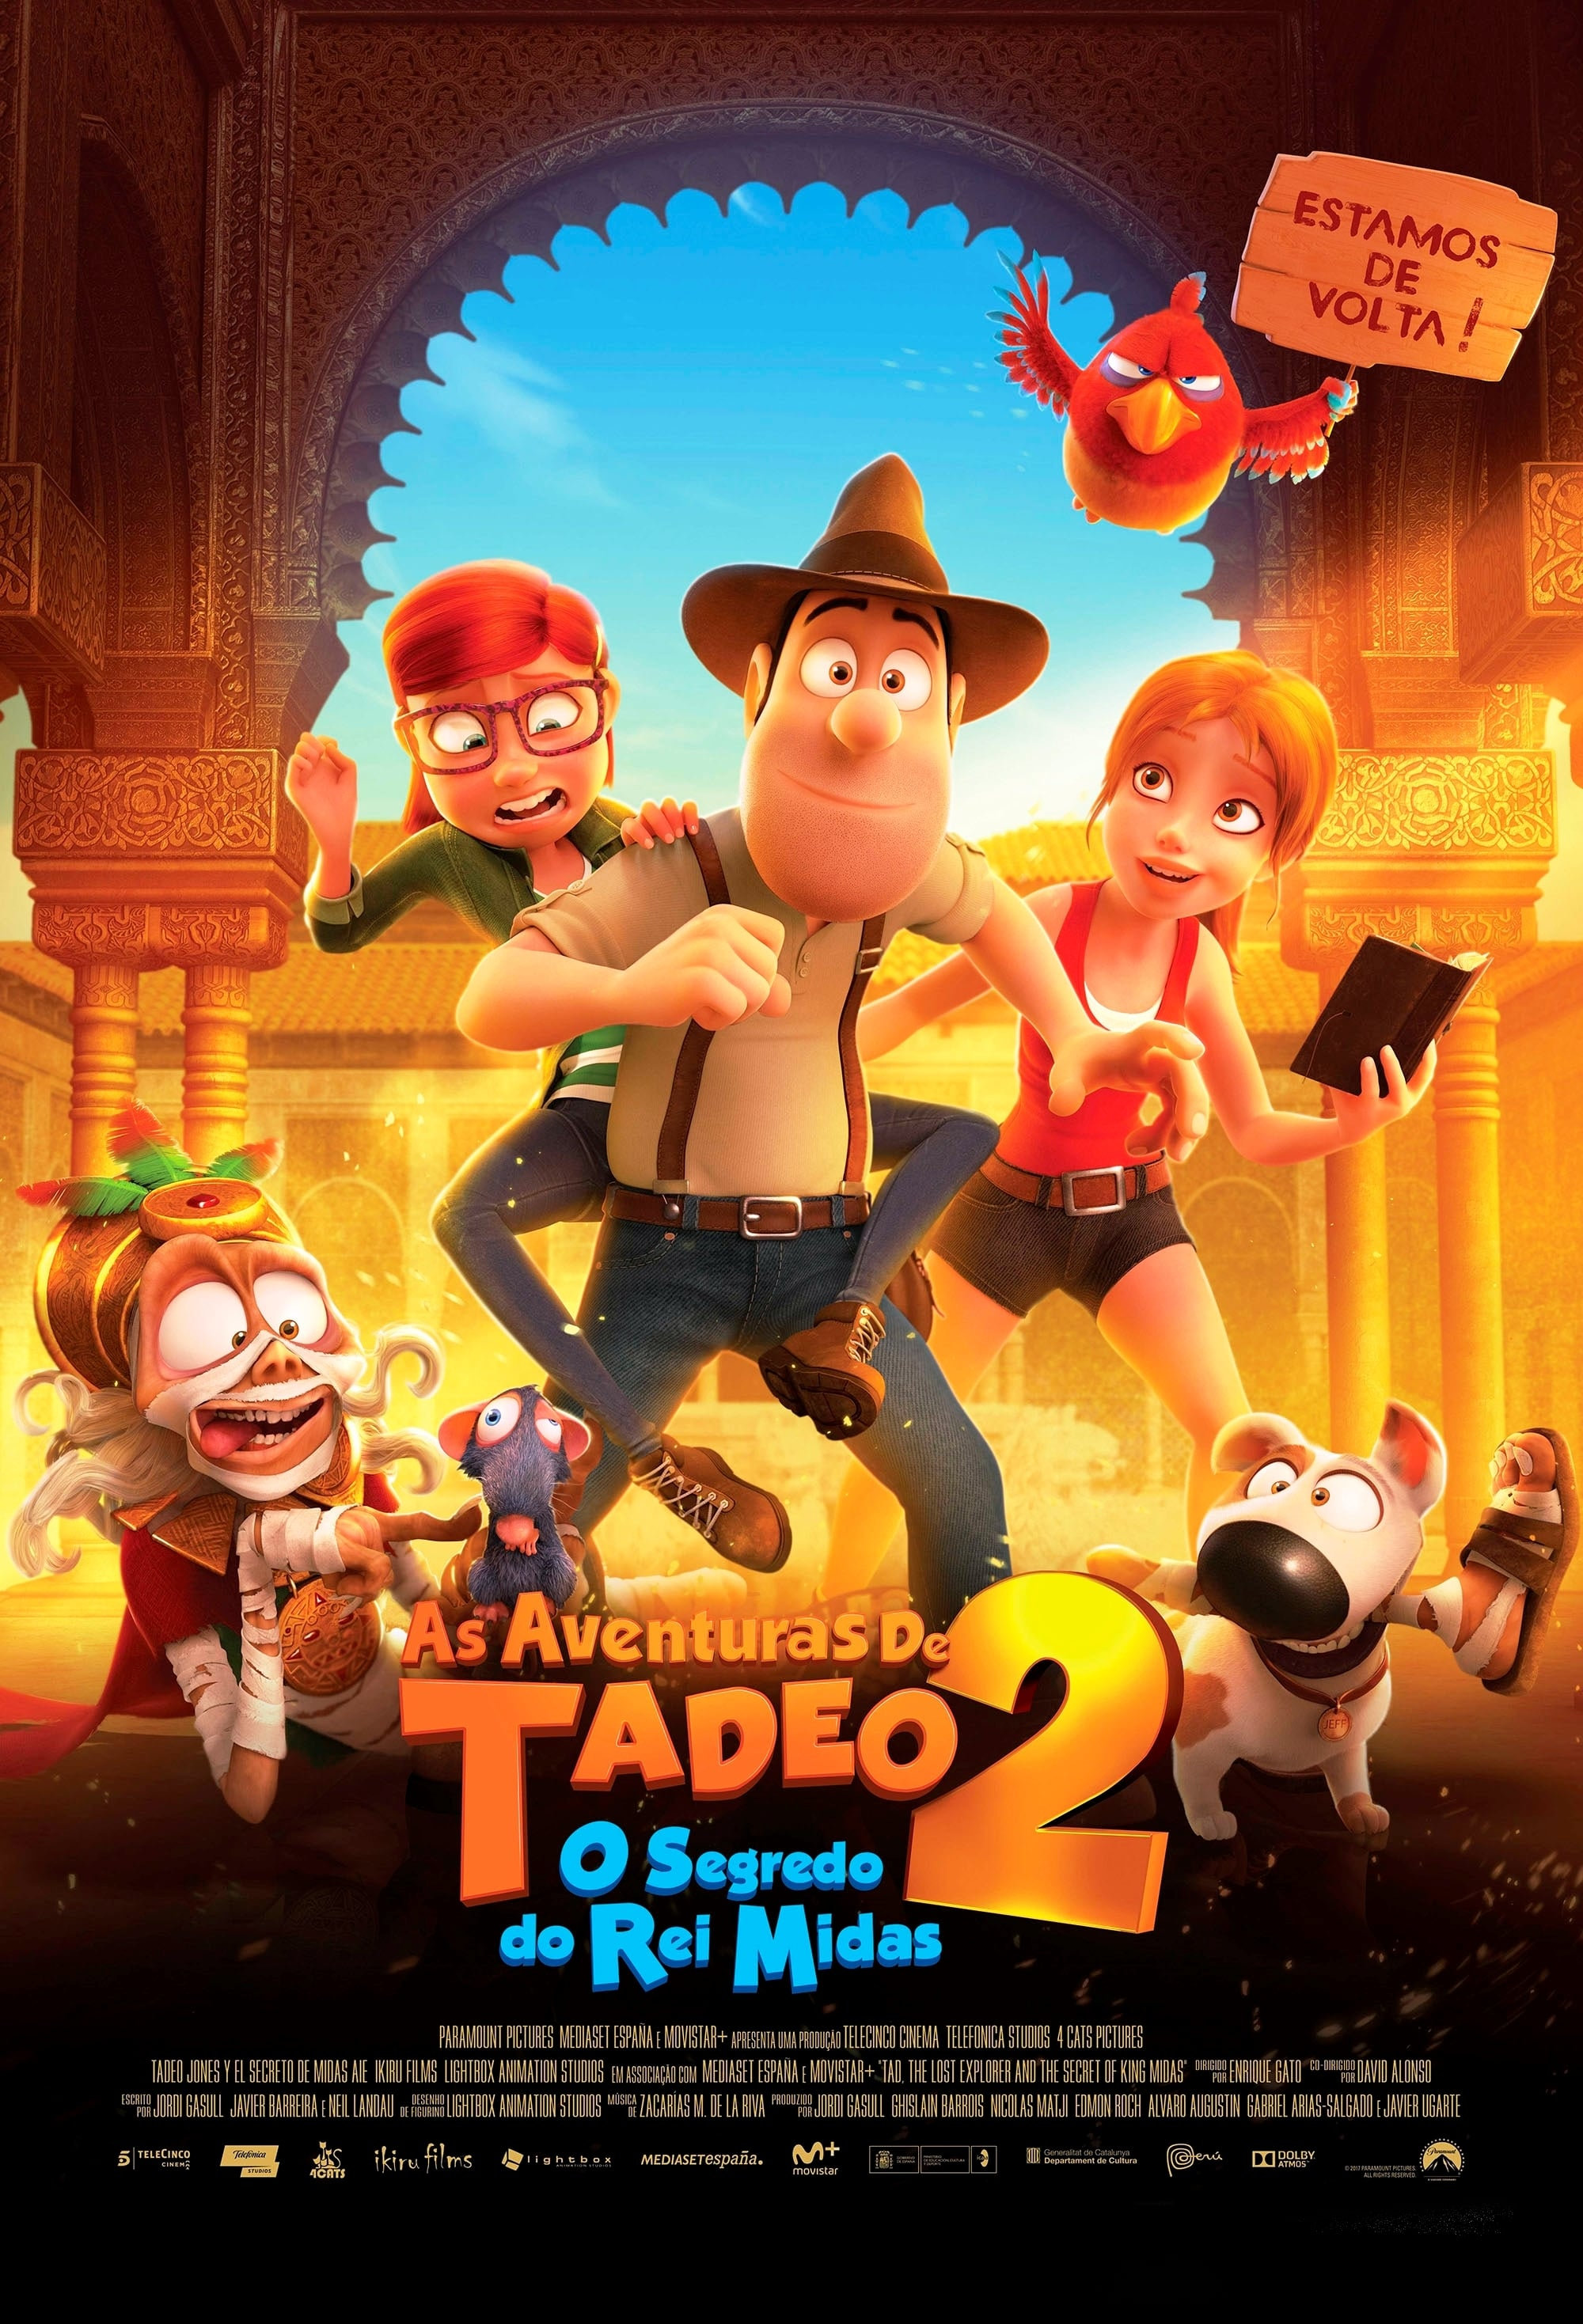 As Aventuras de Tadeo 2 O Segredo do Rei Midas Torrent (2018) BluRay 1080p Download Dual Áudio